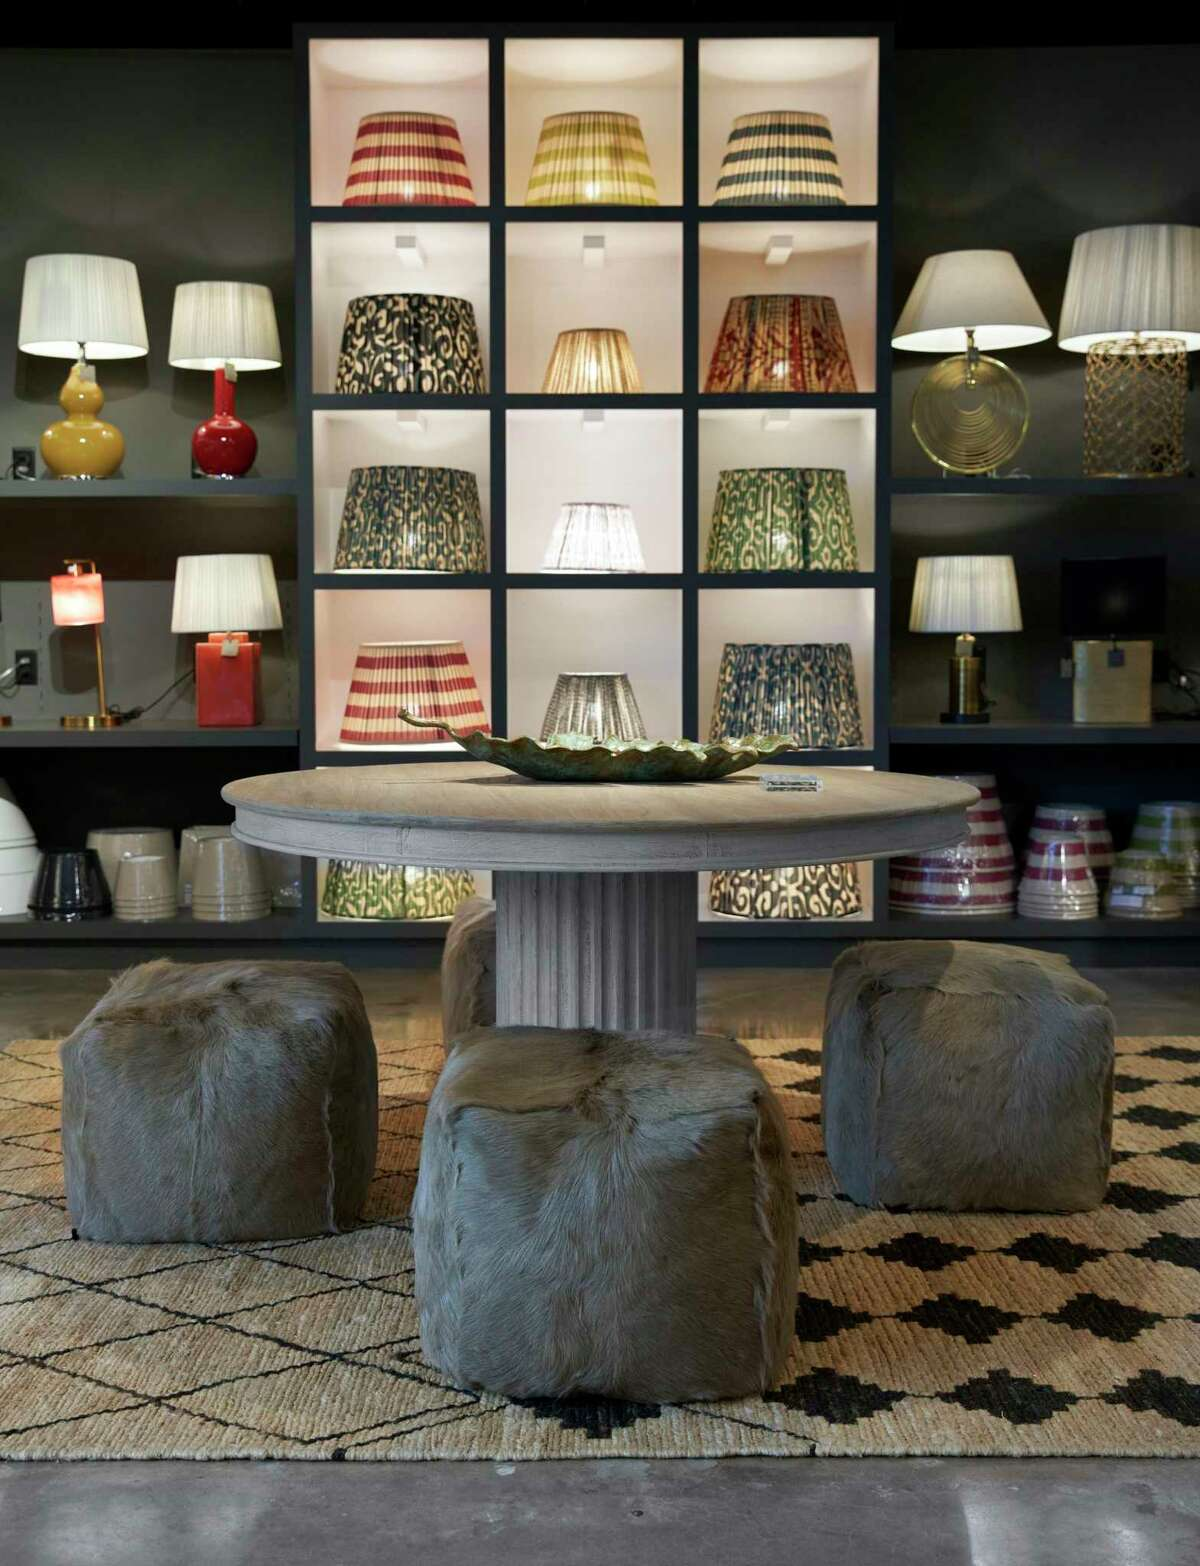 Its lampshades come in a variety of patterns, colors and sizes and can be adapted to American lamps.